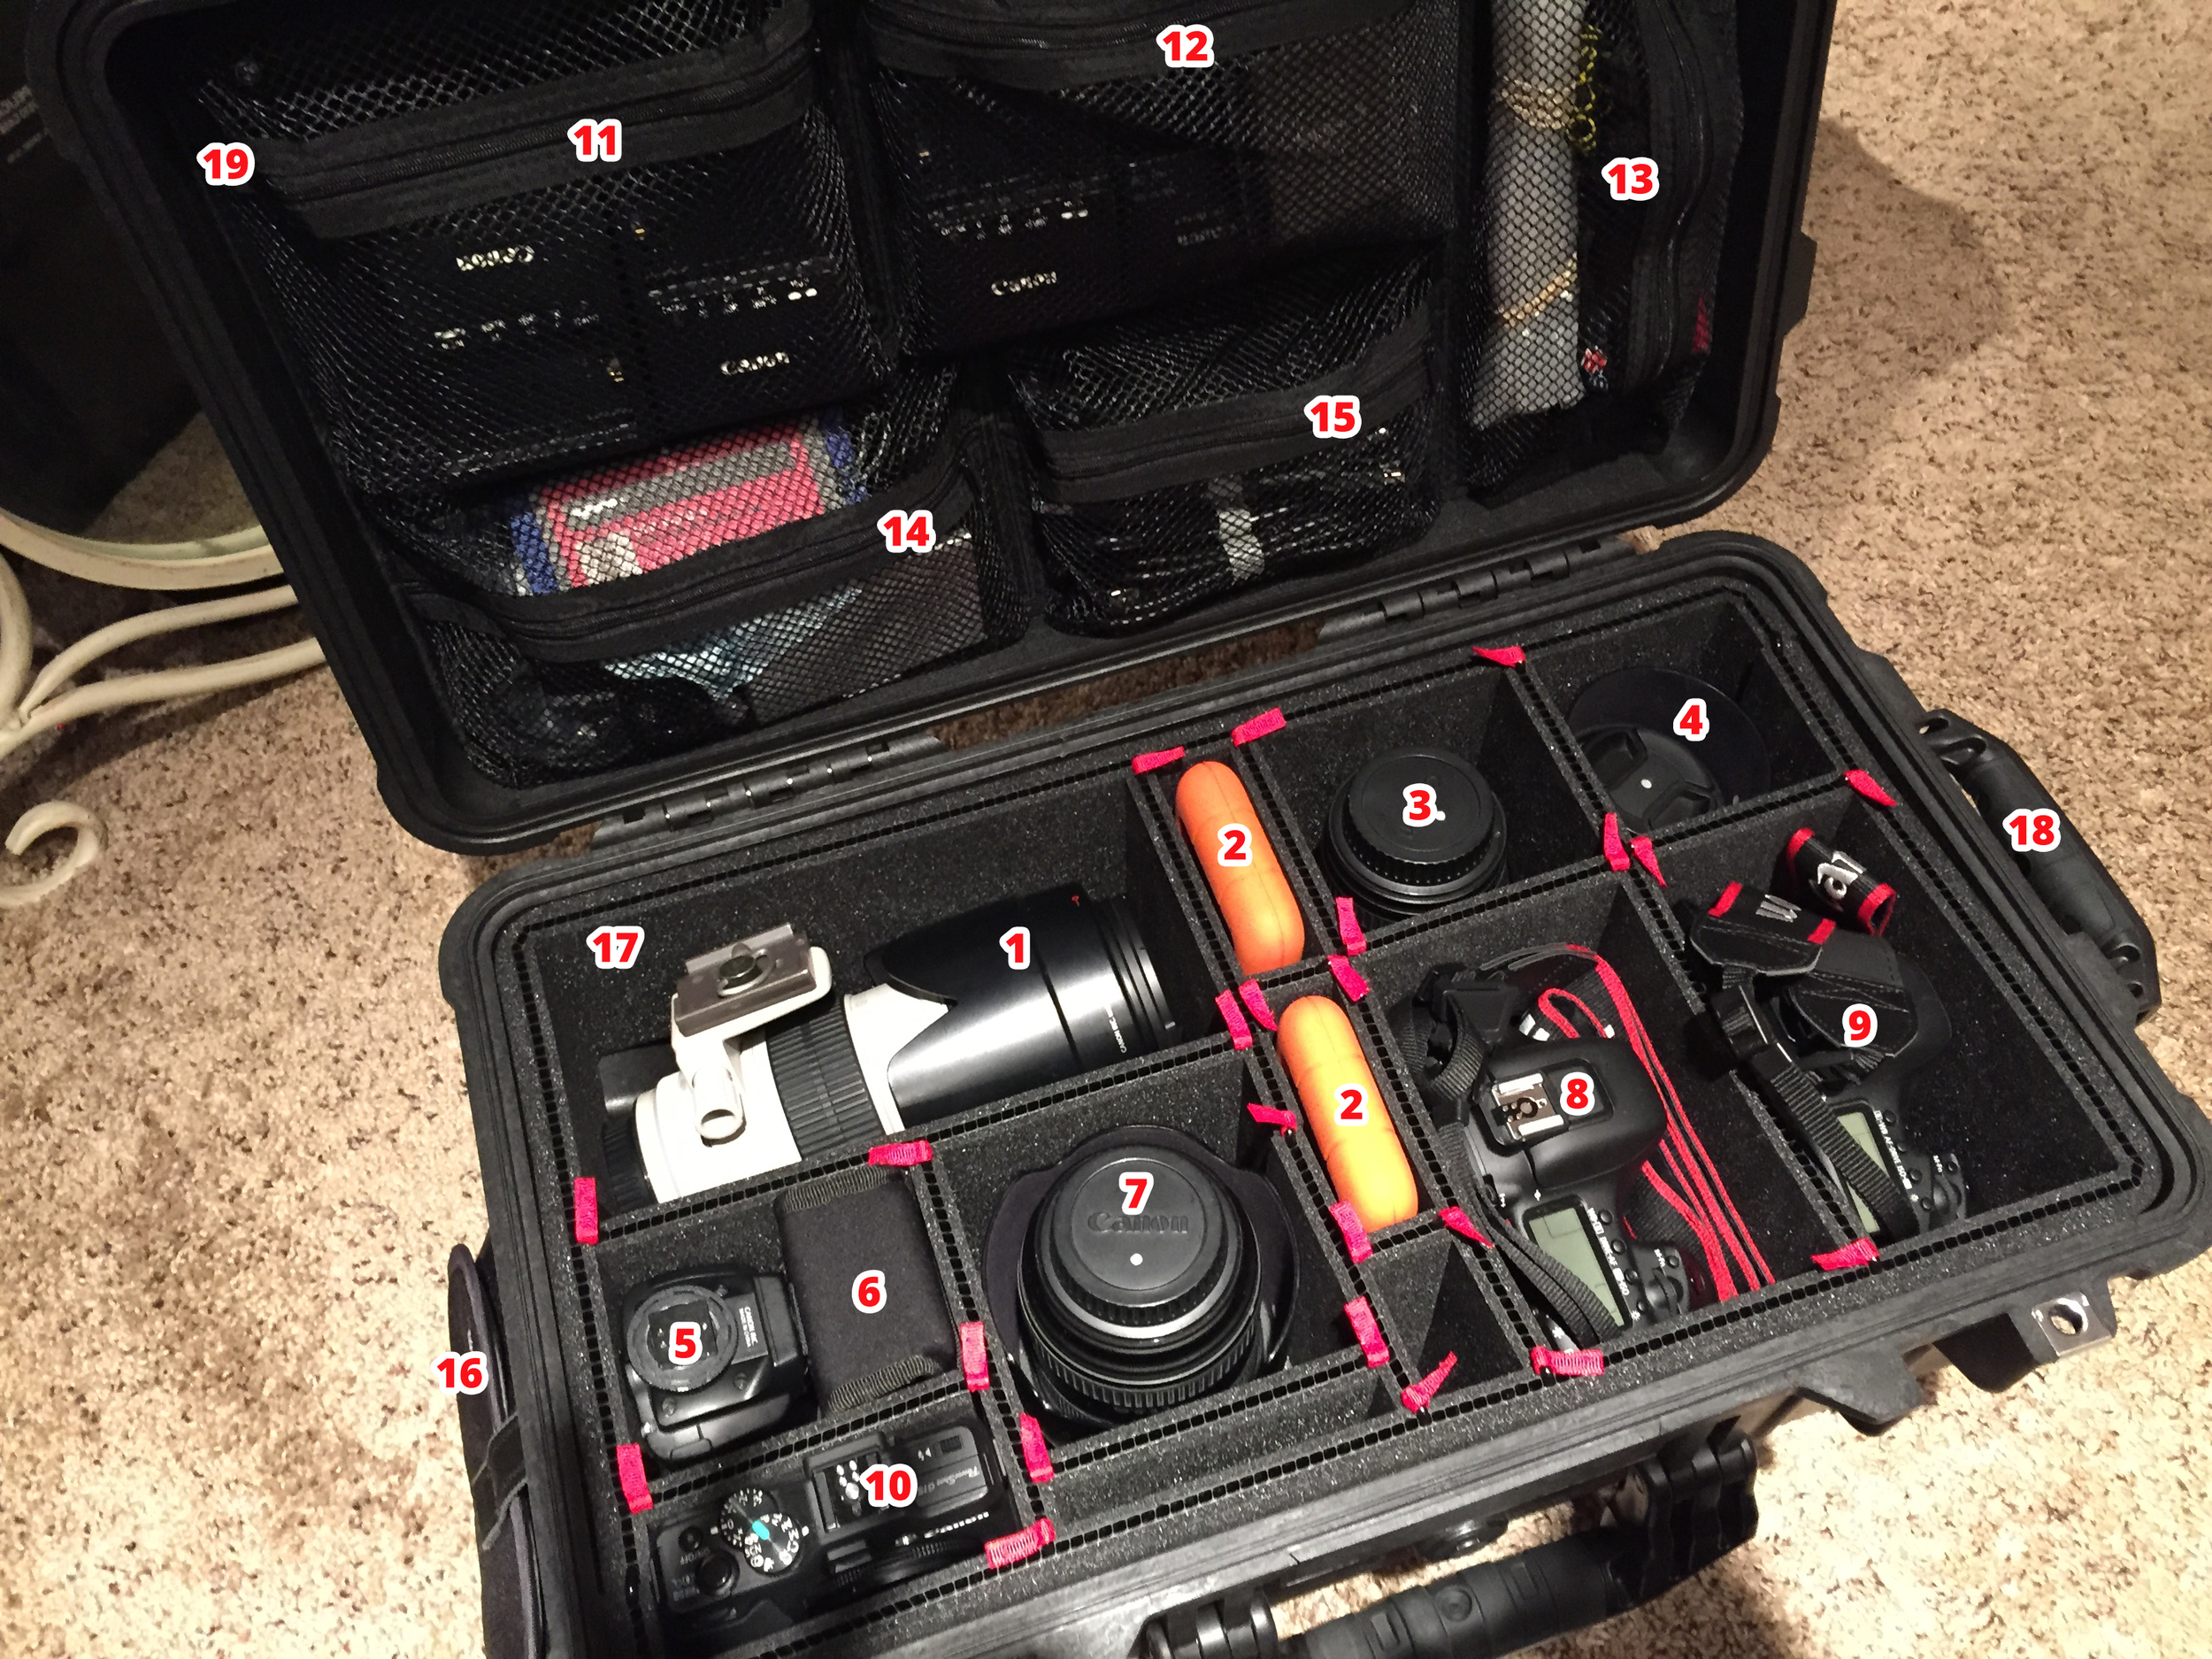 Pelican 1510 Case with Pelican 1519 Lid Organizer and TrekPak Inserts